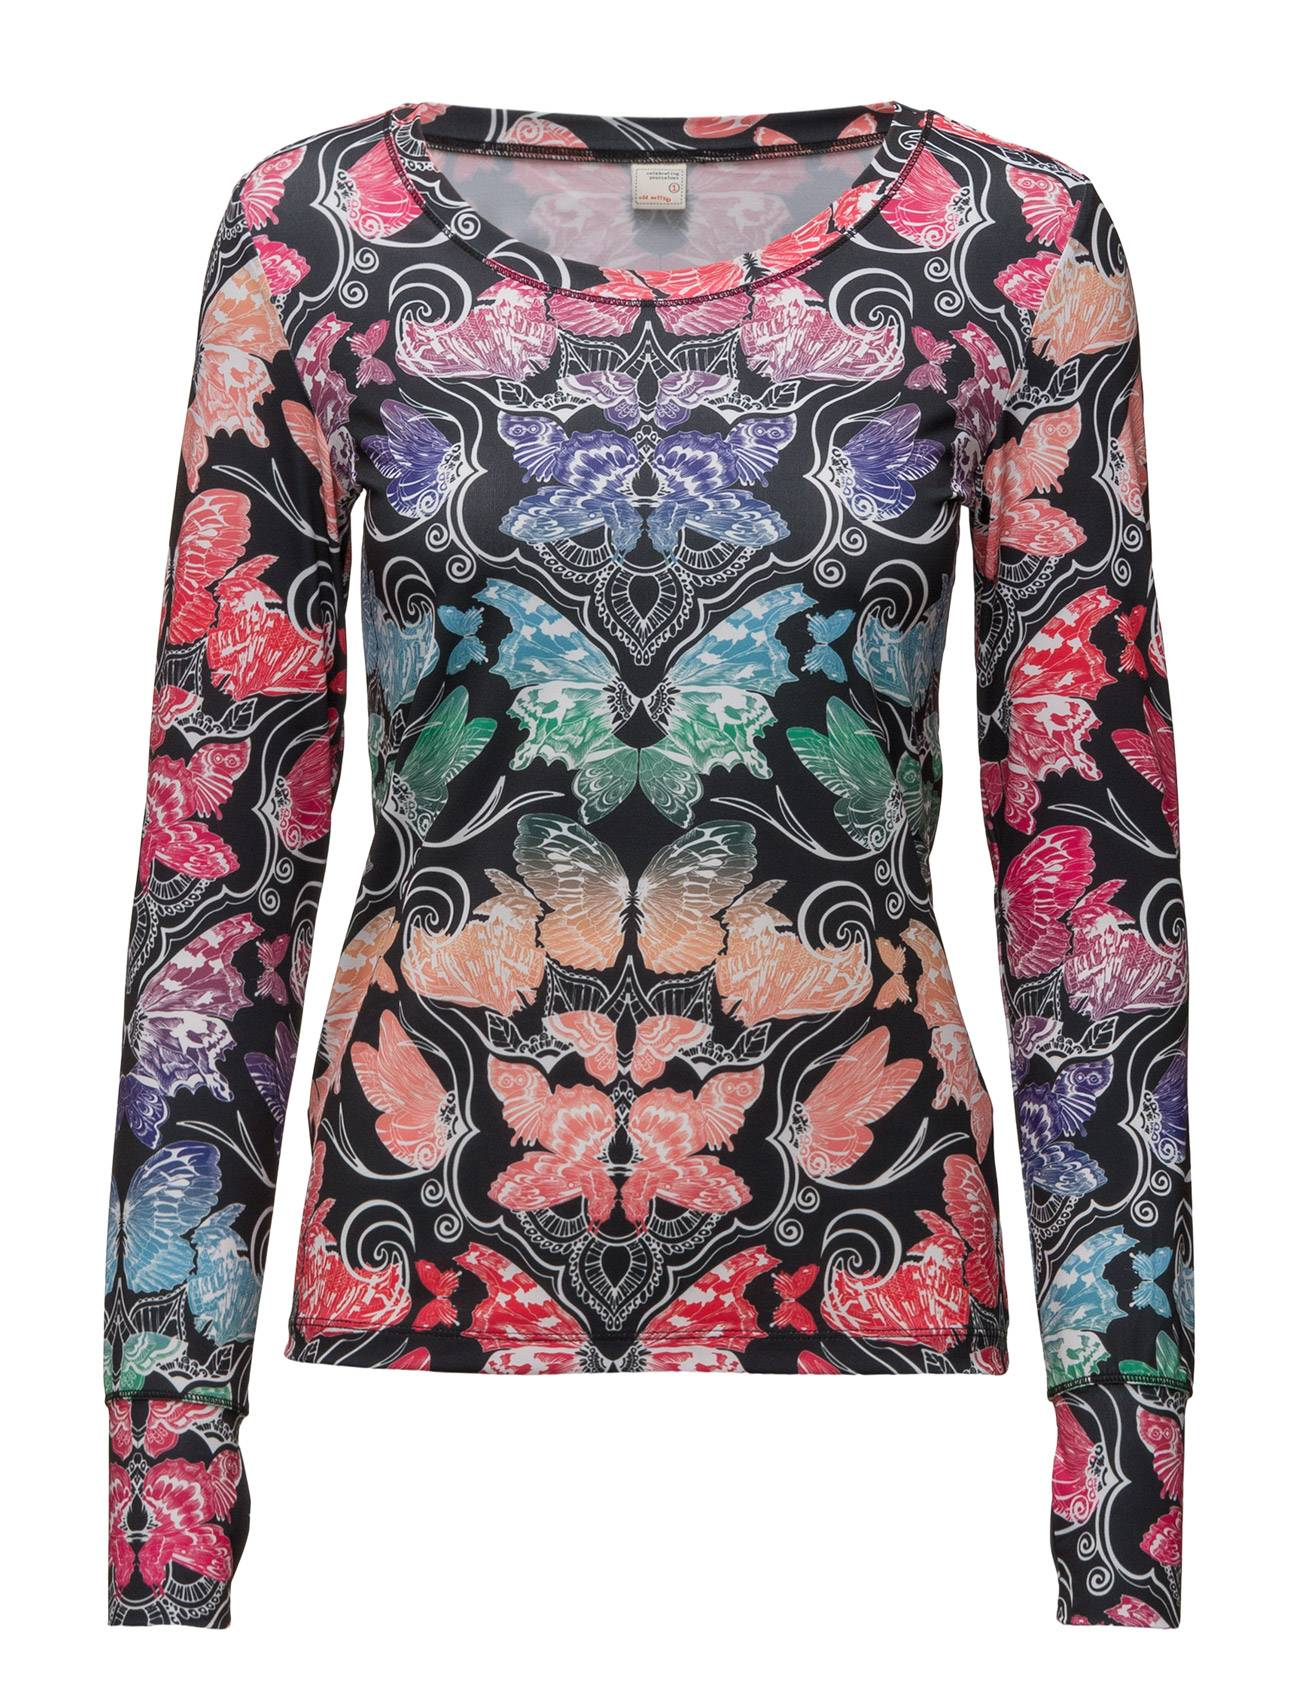 ODD MOLLY ACTIVE WEAR Upbeat L/S Top